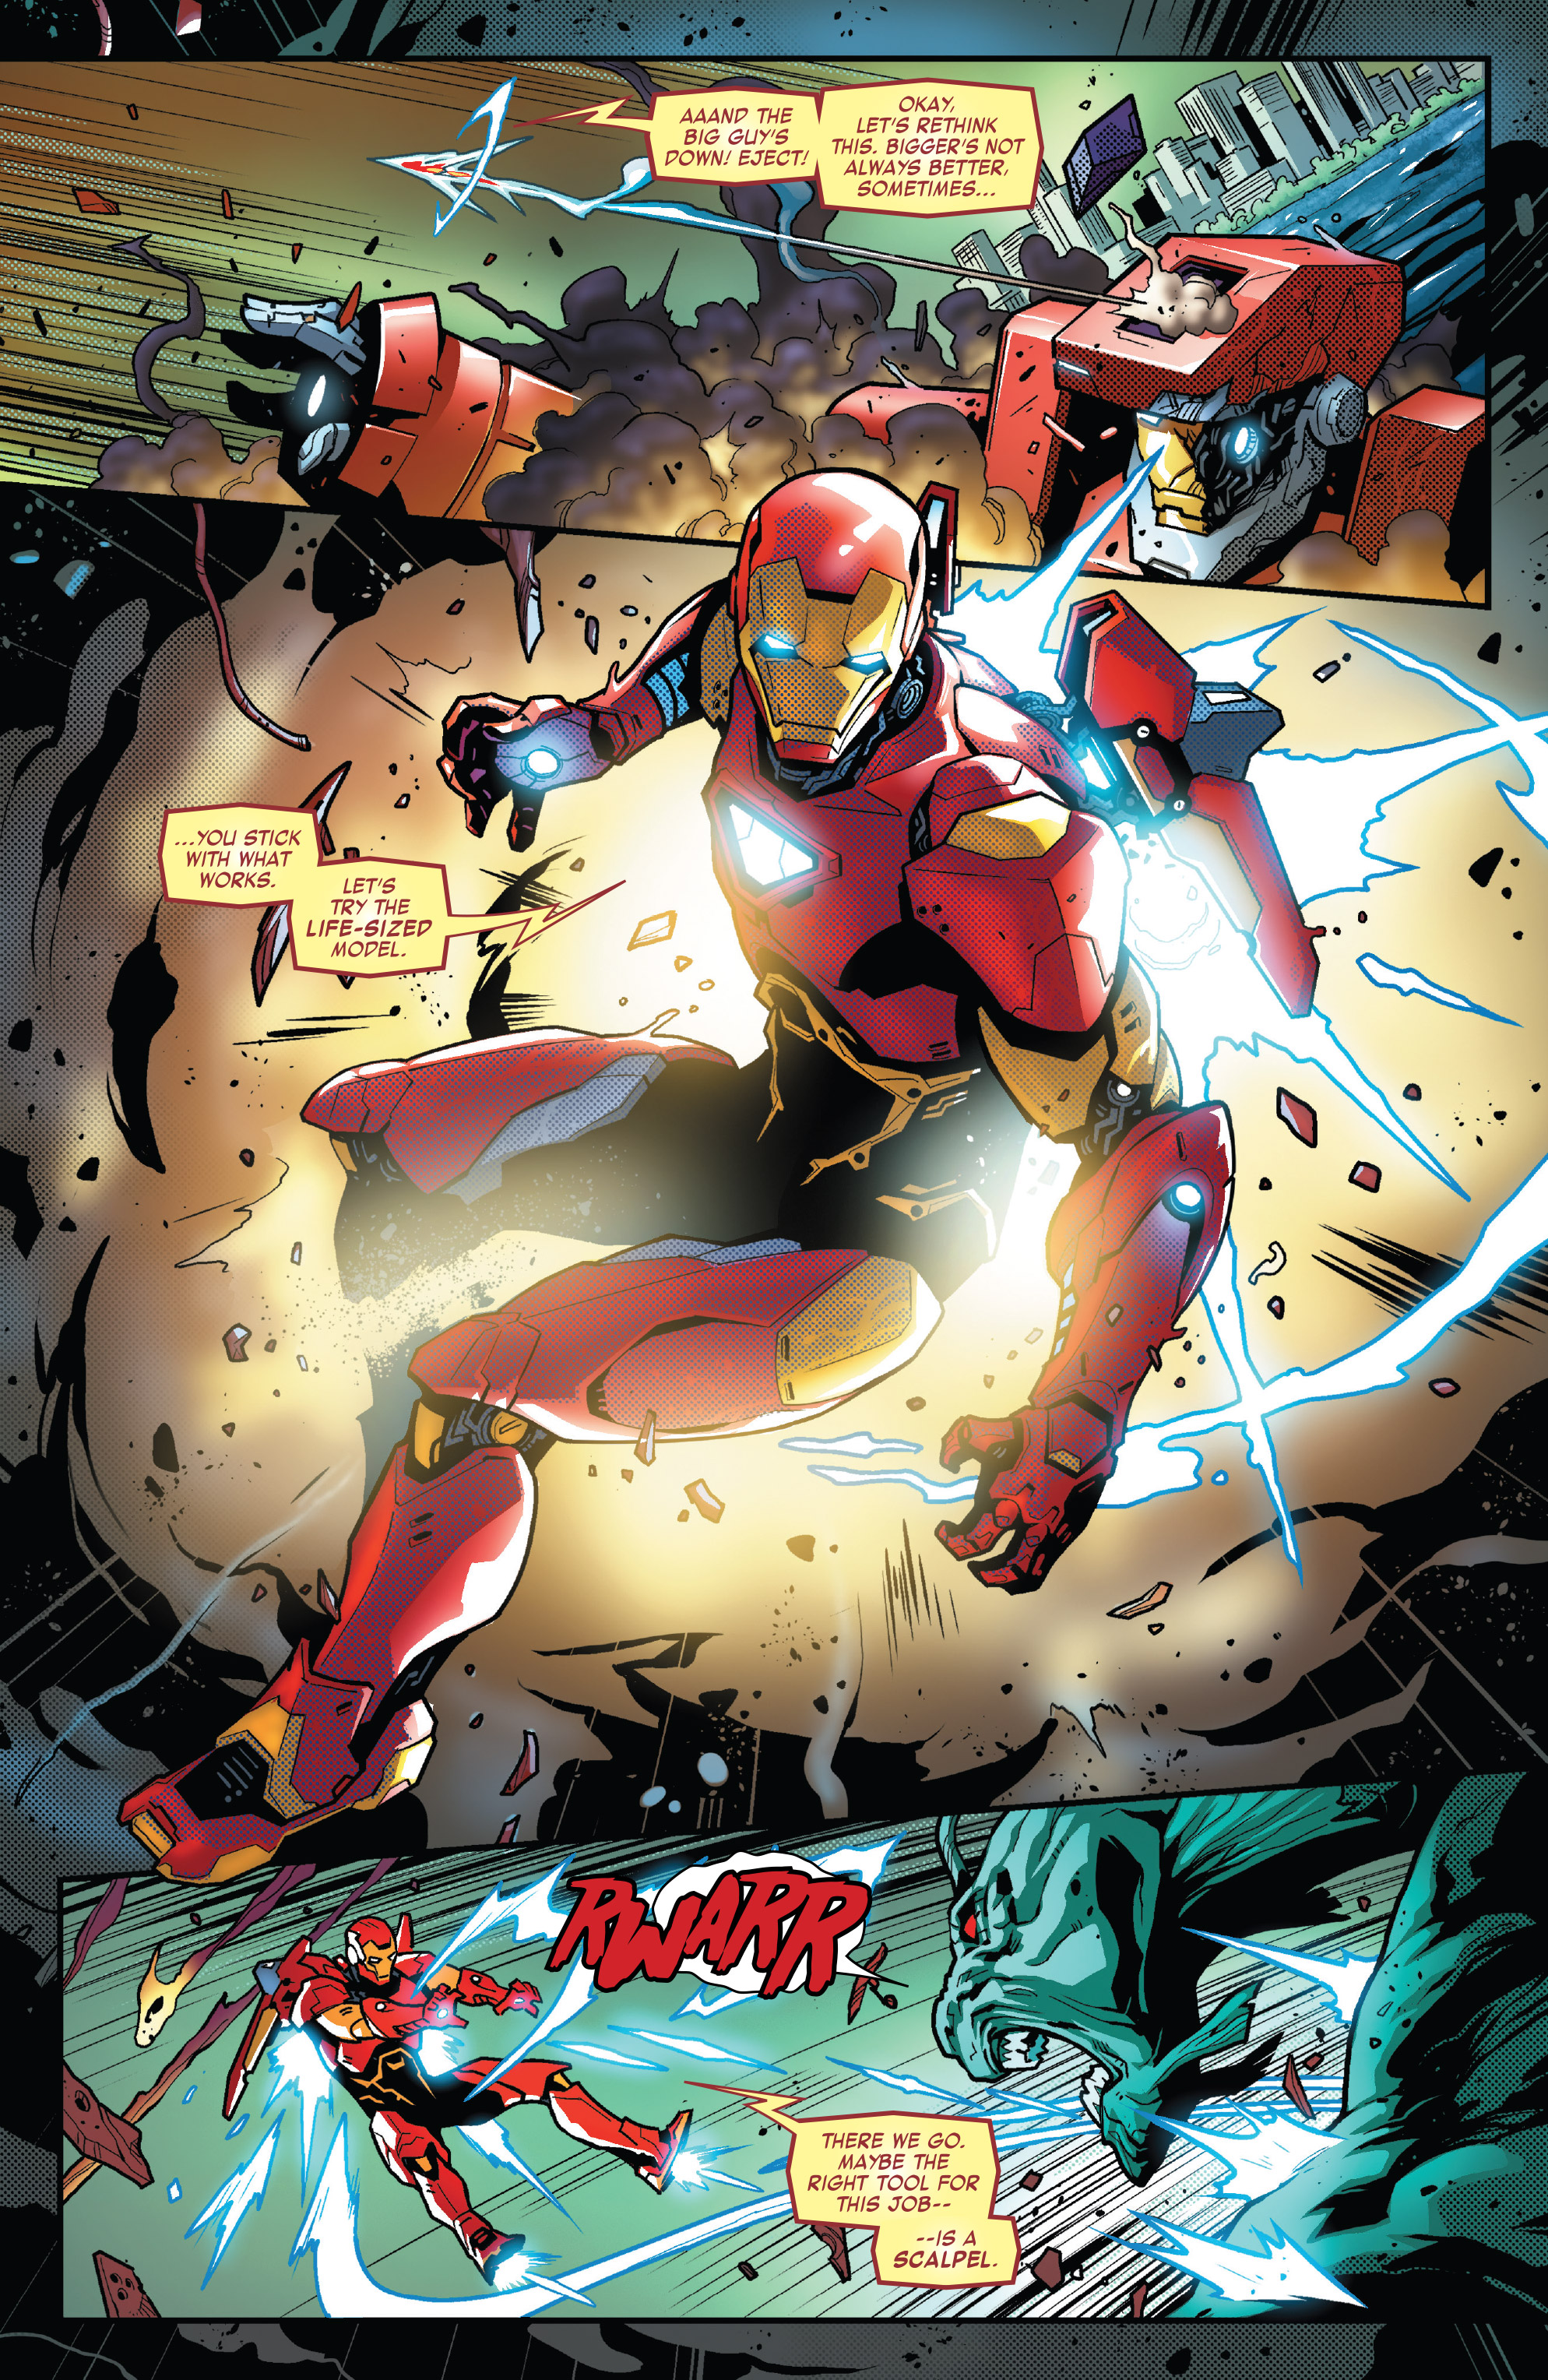 Marvel Comics Universe Tony Stark Iron Man 1 Spoilers A Fresh Start For Old Shell Head As An Interesting New Status Quo Revealed Plus At Least 2 New Armors Inside Pulse